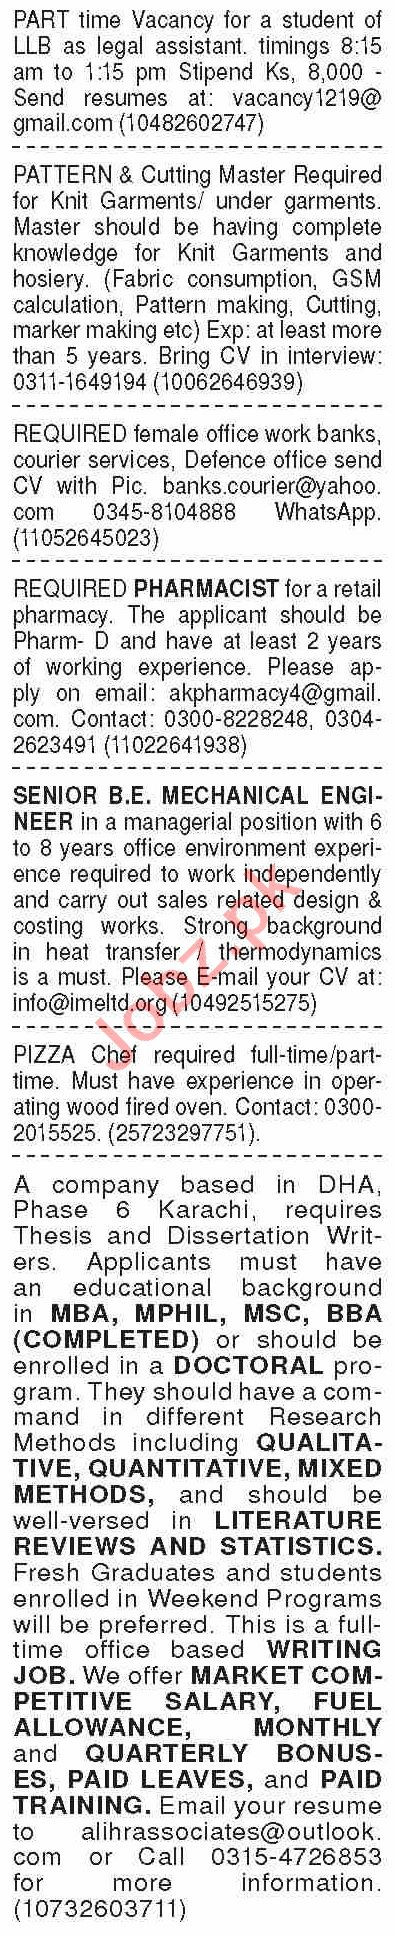 Dawn Sunday Classified Ads 27 Sept 2020 for General Staff